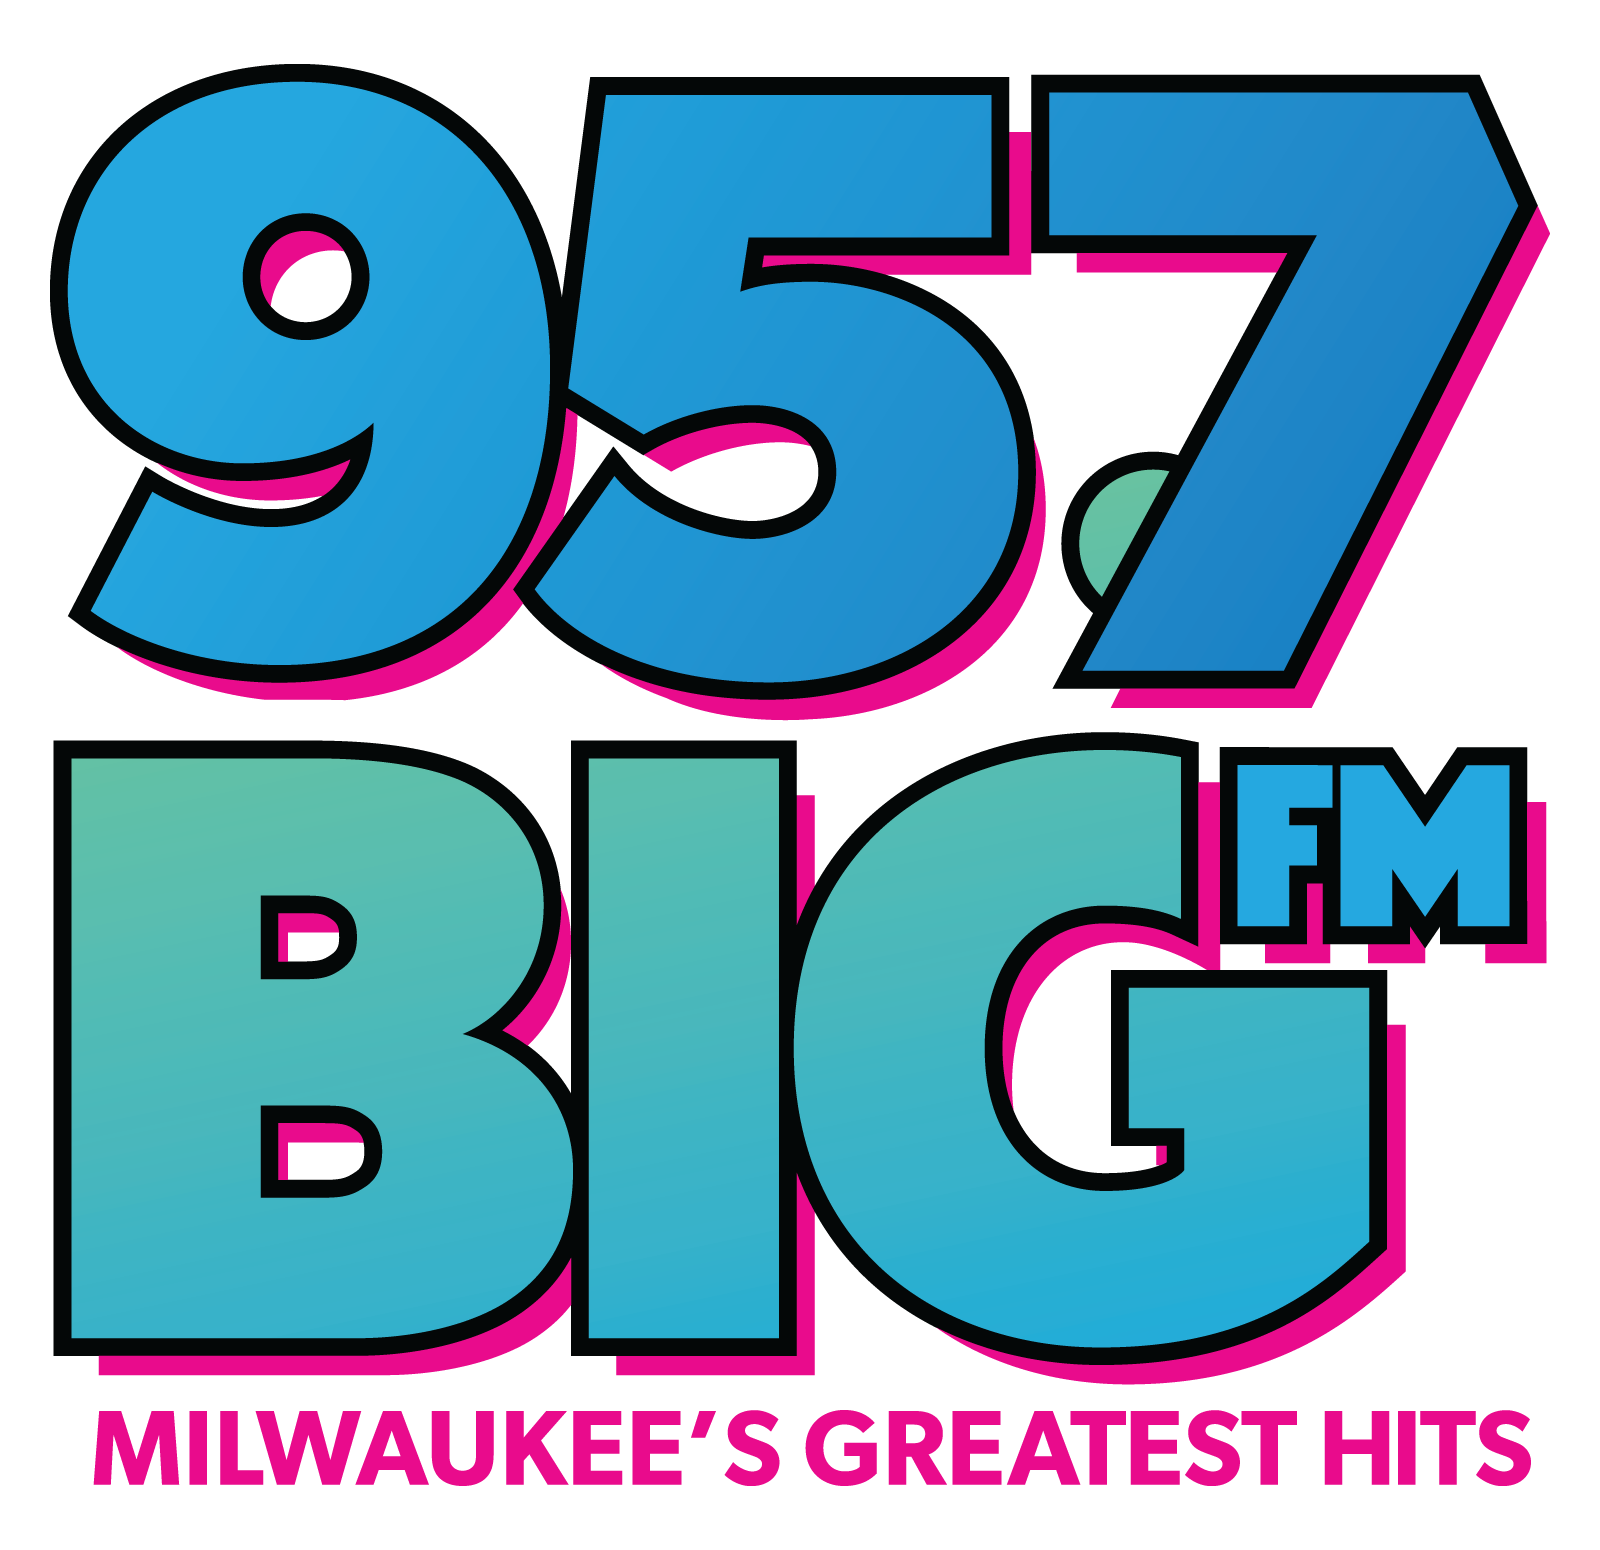 I heart the 80s clipart clip art library stock 95.7 BIG FM - Milwaukee's Greatest Hits! clip art library stock